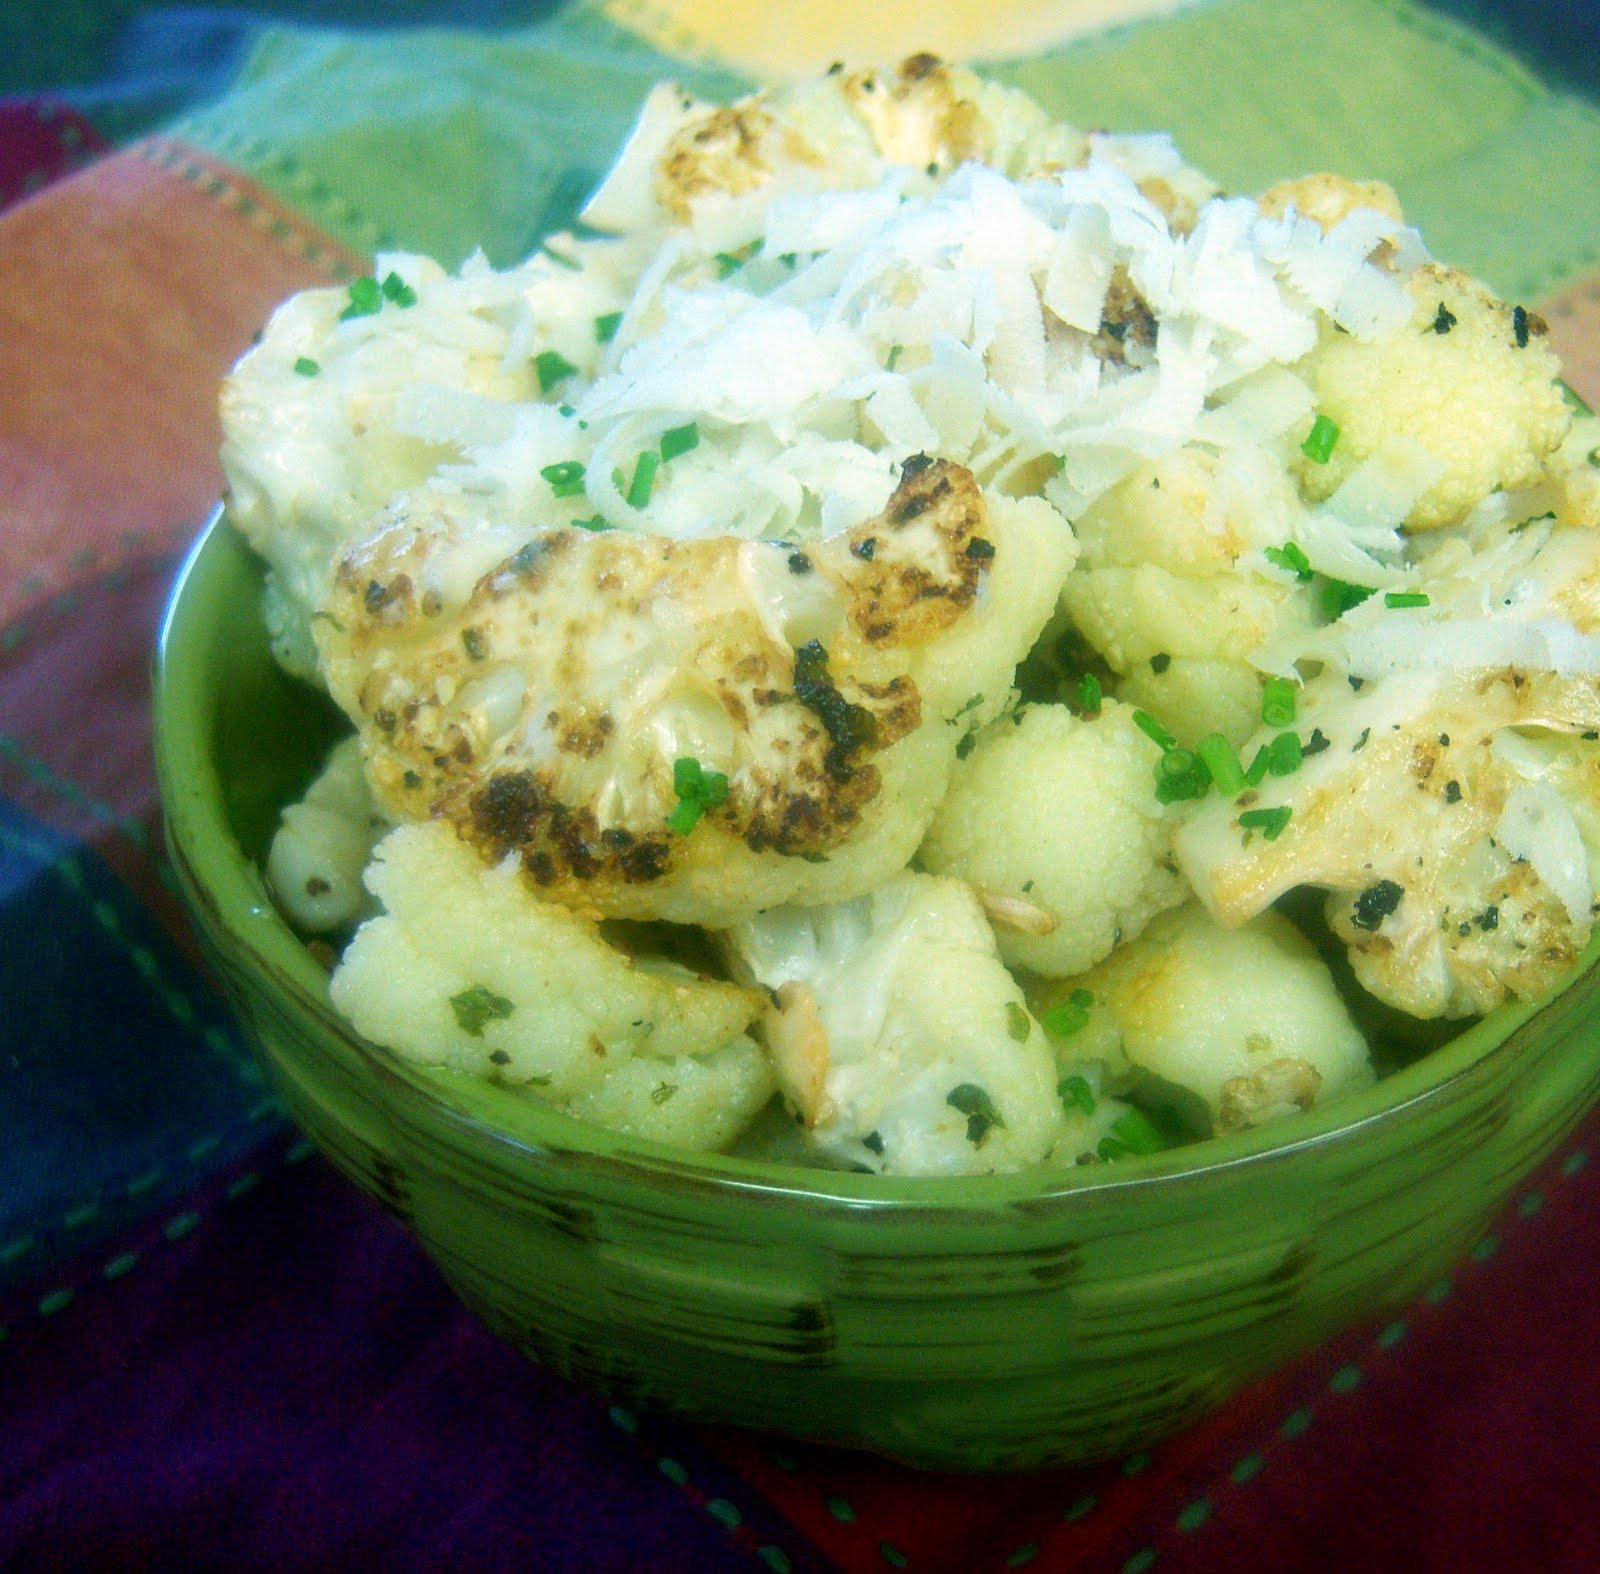 ... Cooks: Oven-Roasted Cauliflower with Garlic, Olive Oil and Lemon Juice